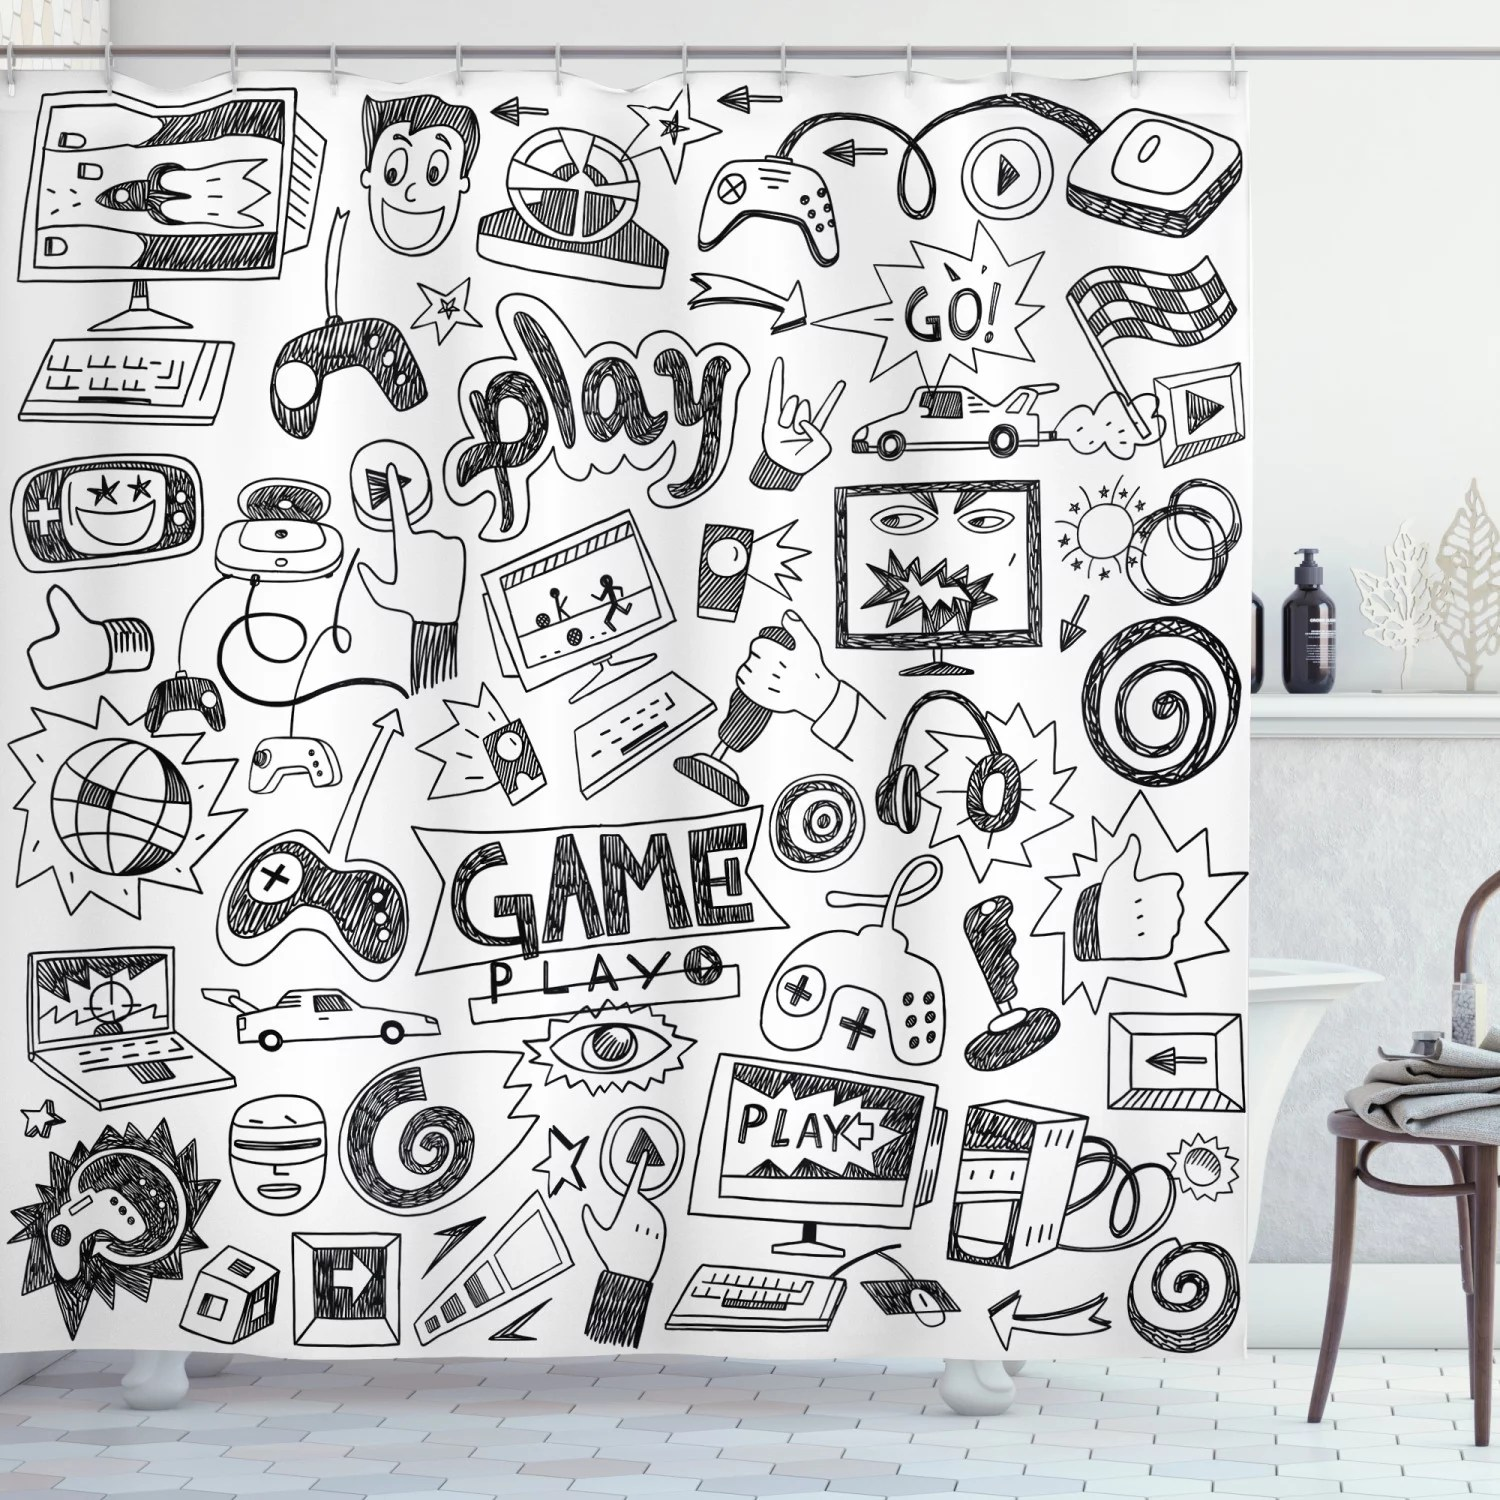 video games shower curtain gaming theme sketch style print fabric bathroom decor set with hooks 70 inches long by ambesonne